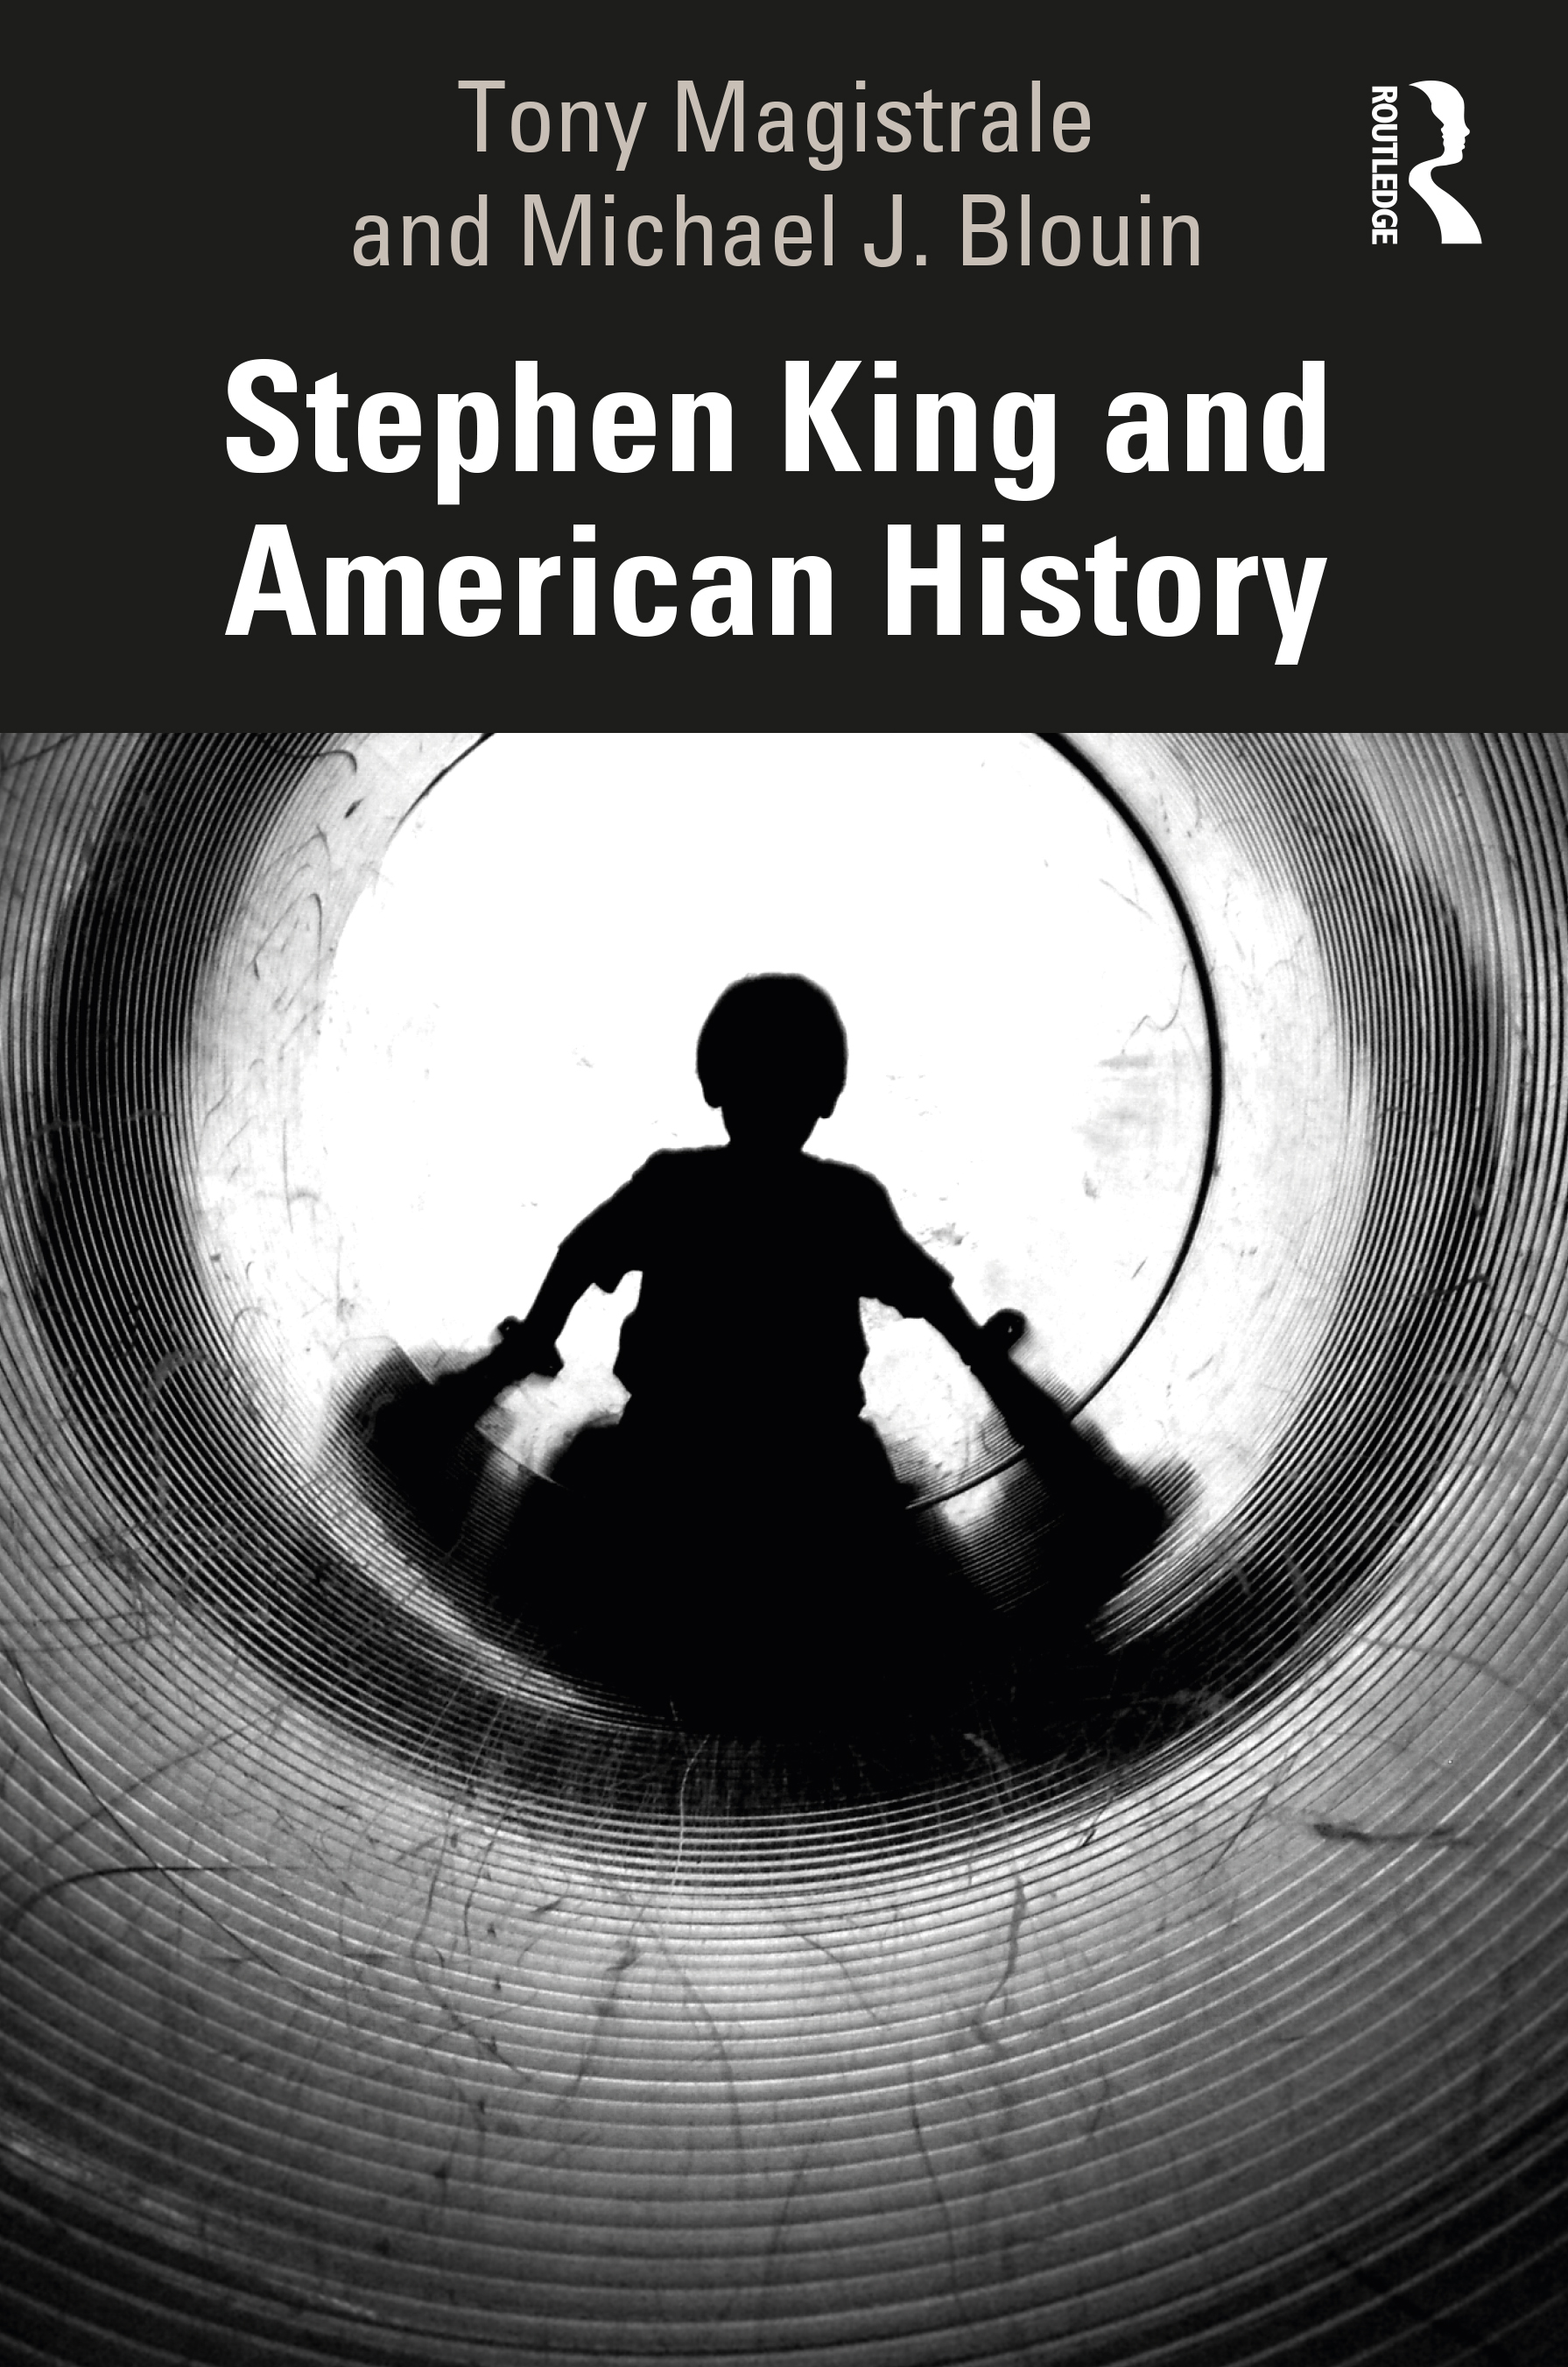 Stephen King and American History book cover